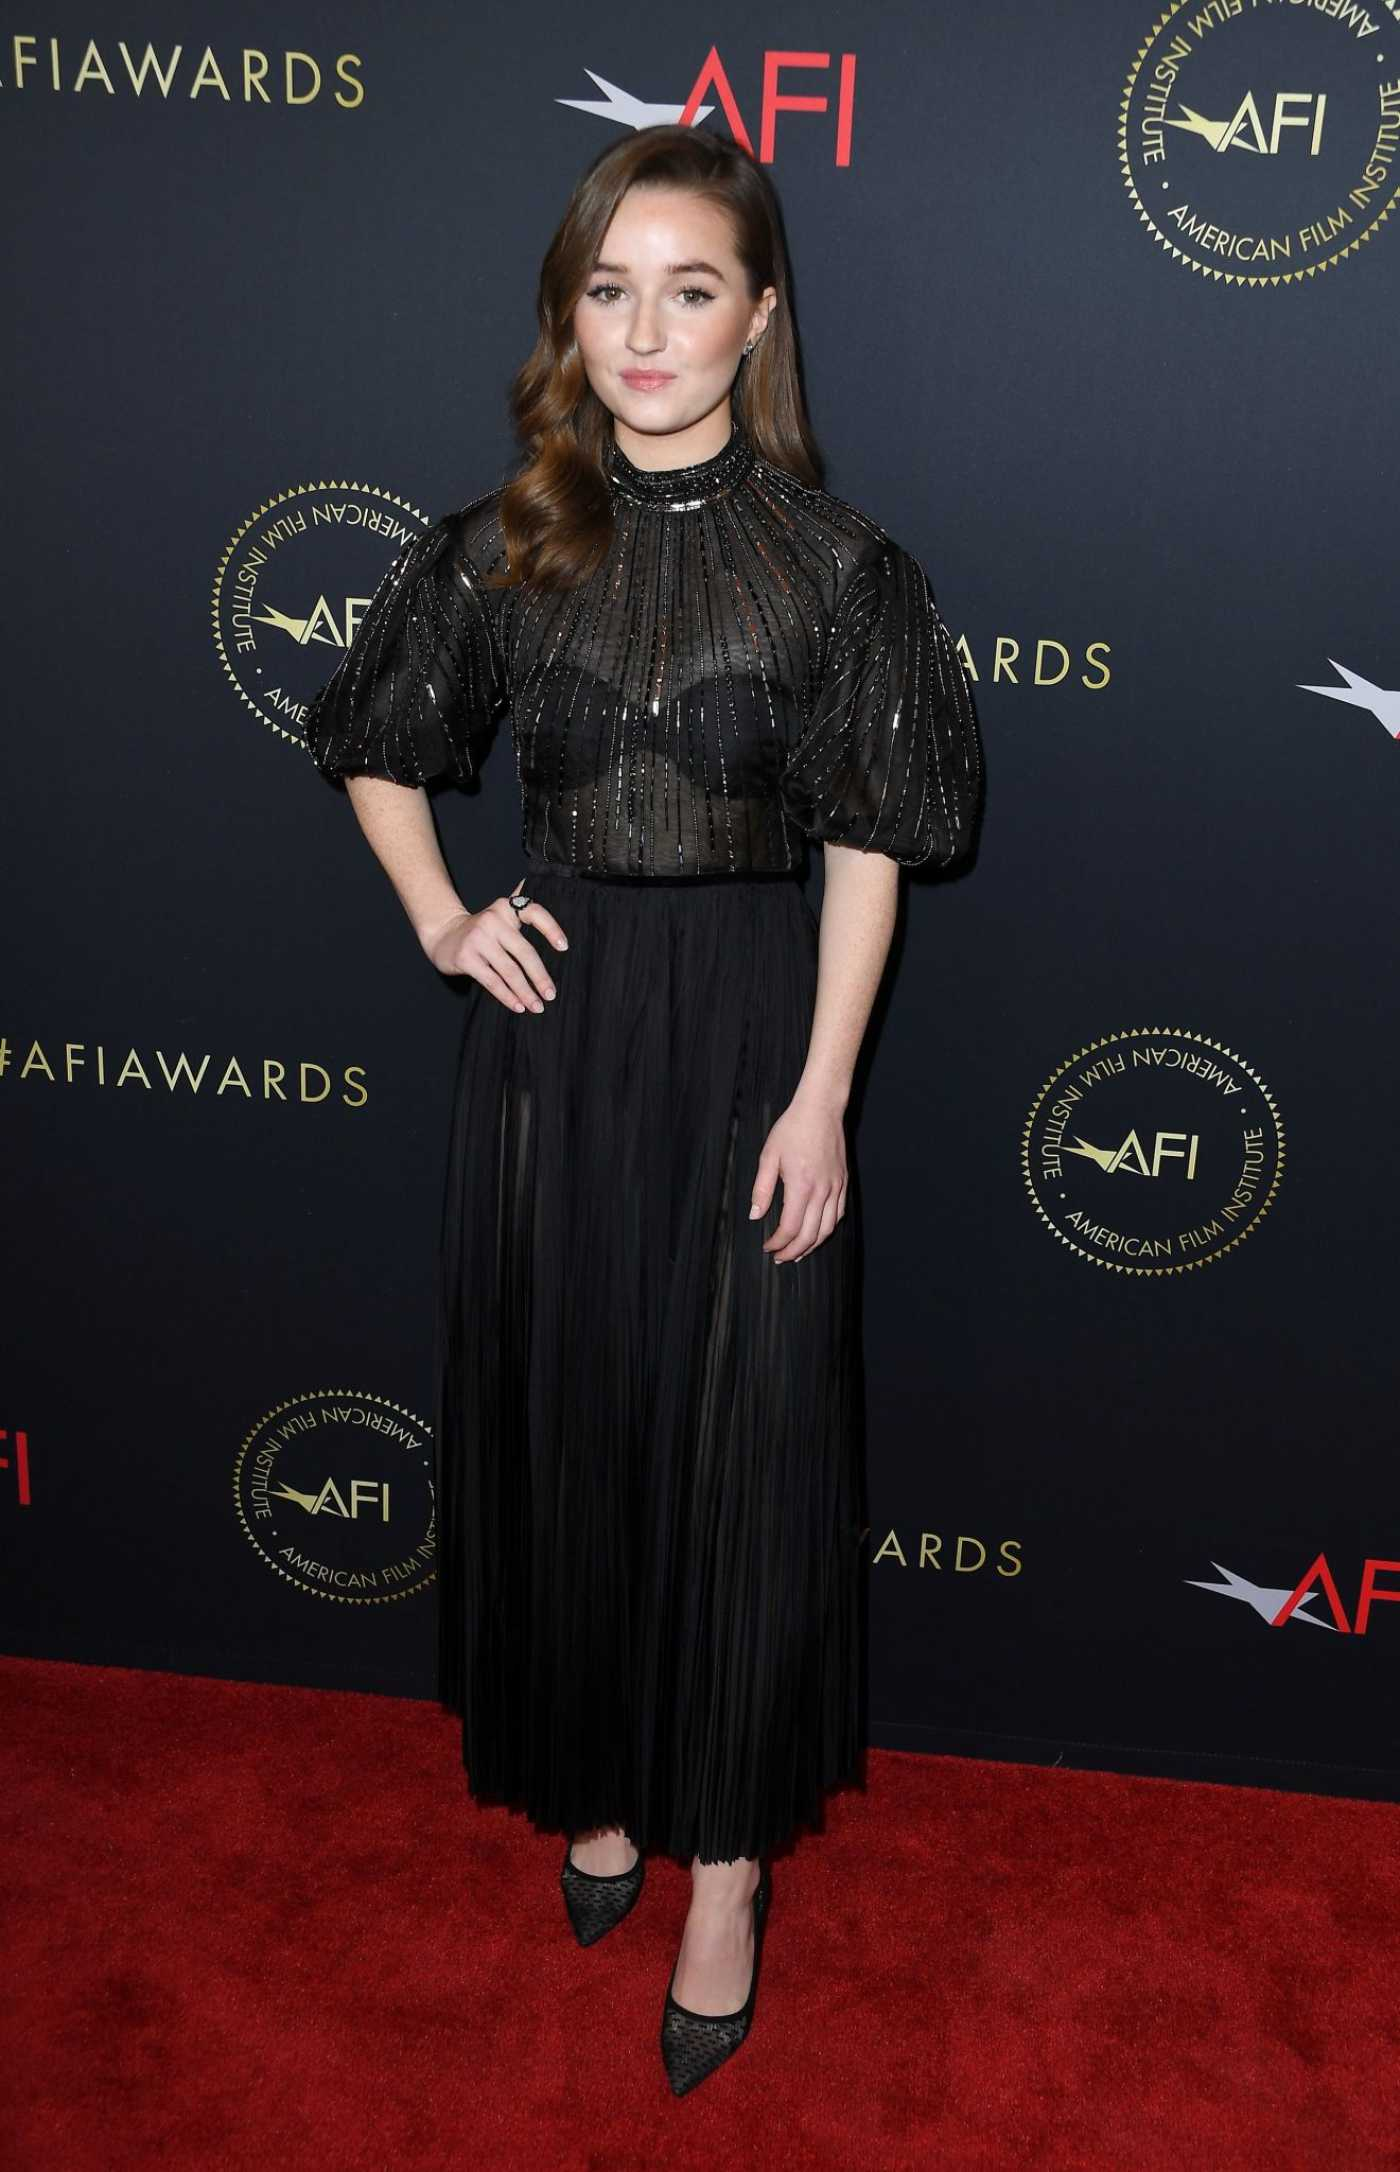 Kaitlyn Dever Attends the 20th Annual AFI Awards at Four Seasons Hotel Los Angeles in Beverly Hills 01/03/2020